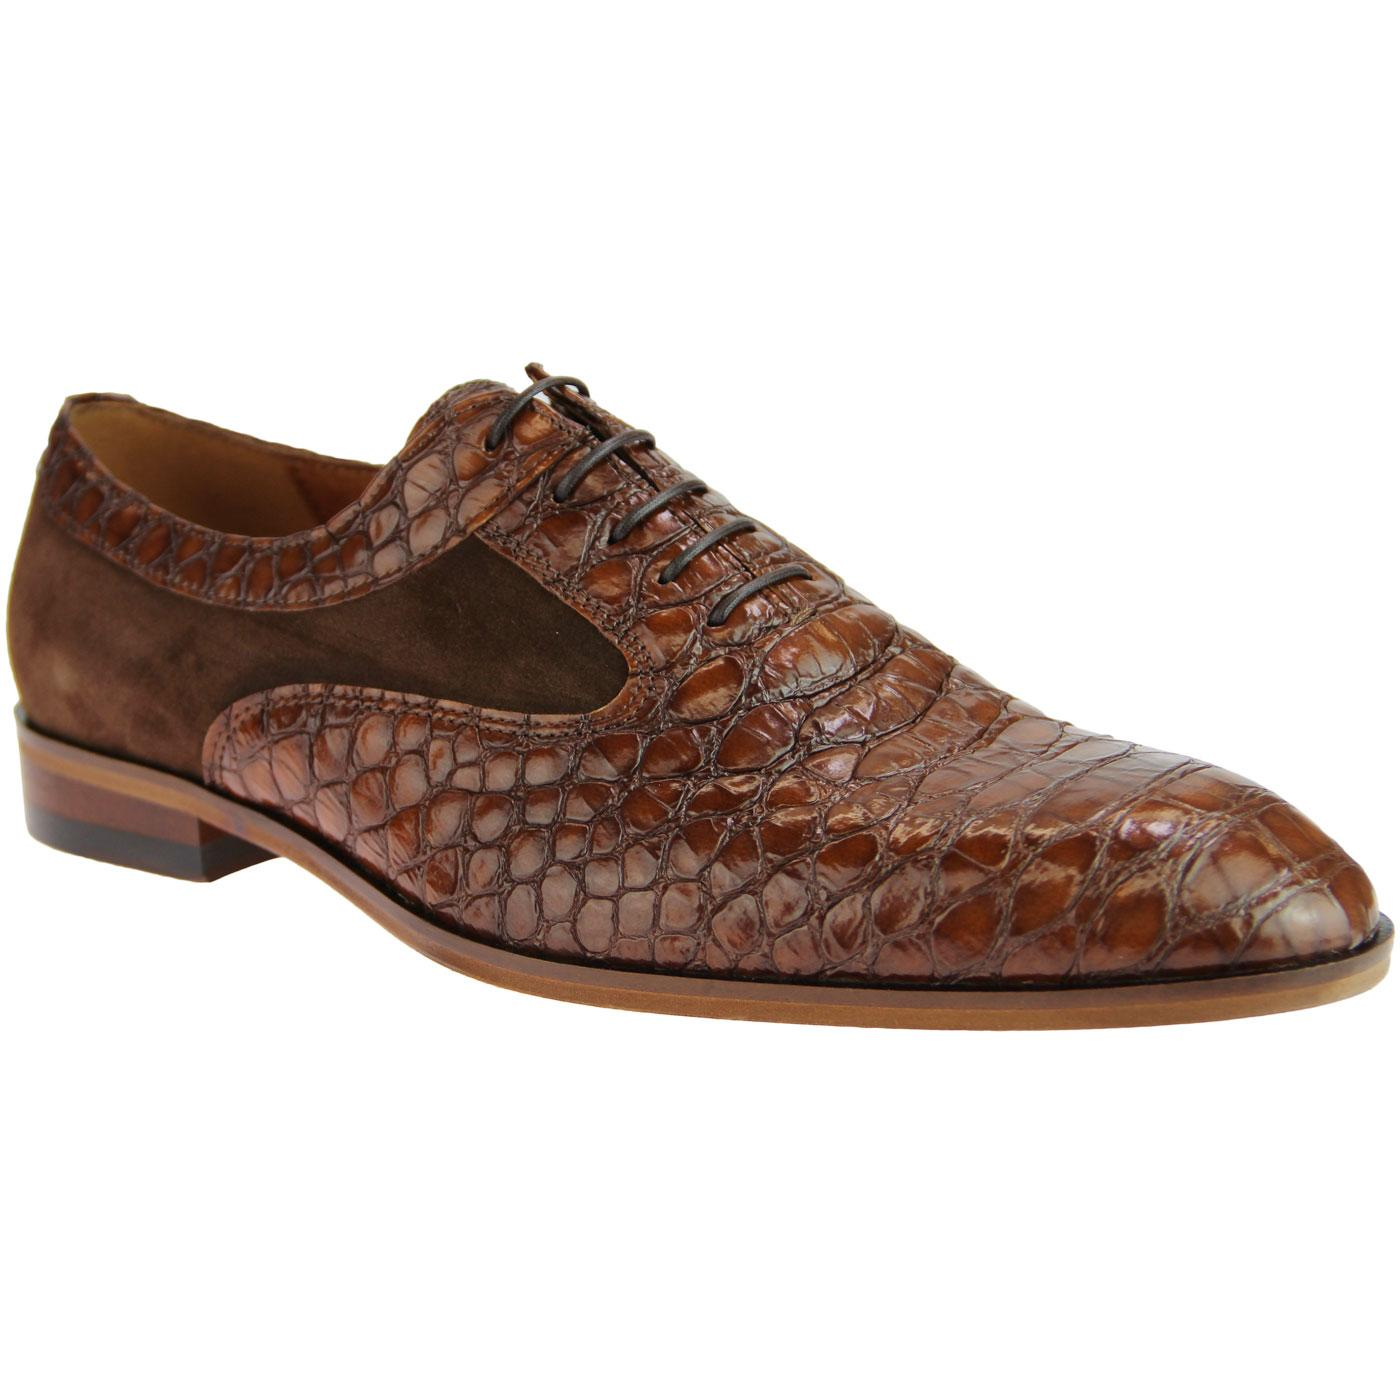 LACUZZO Retro Mod Croc Stamp Oxford Shoes (Tan)